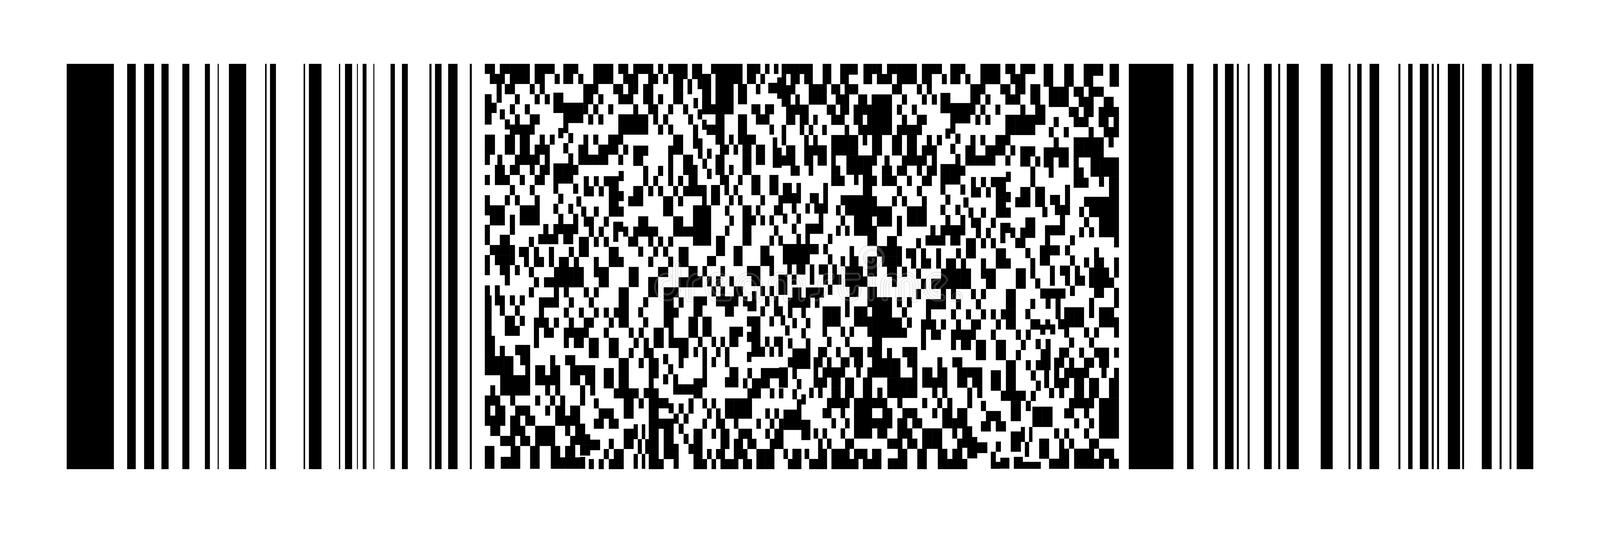 Horizontal black bar code and qr code on white for pattern,background and design,vector illustration royalty free illustration